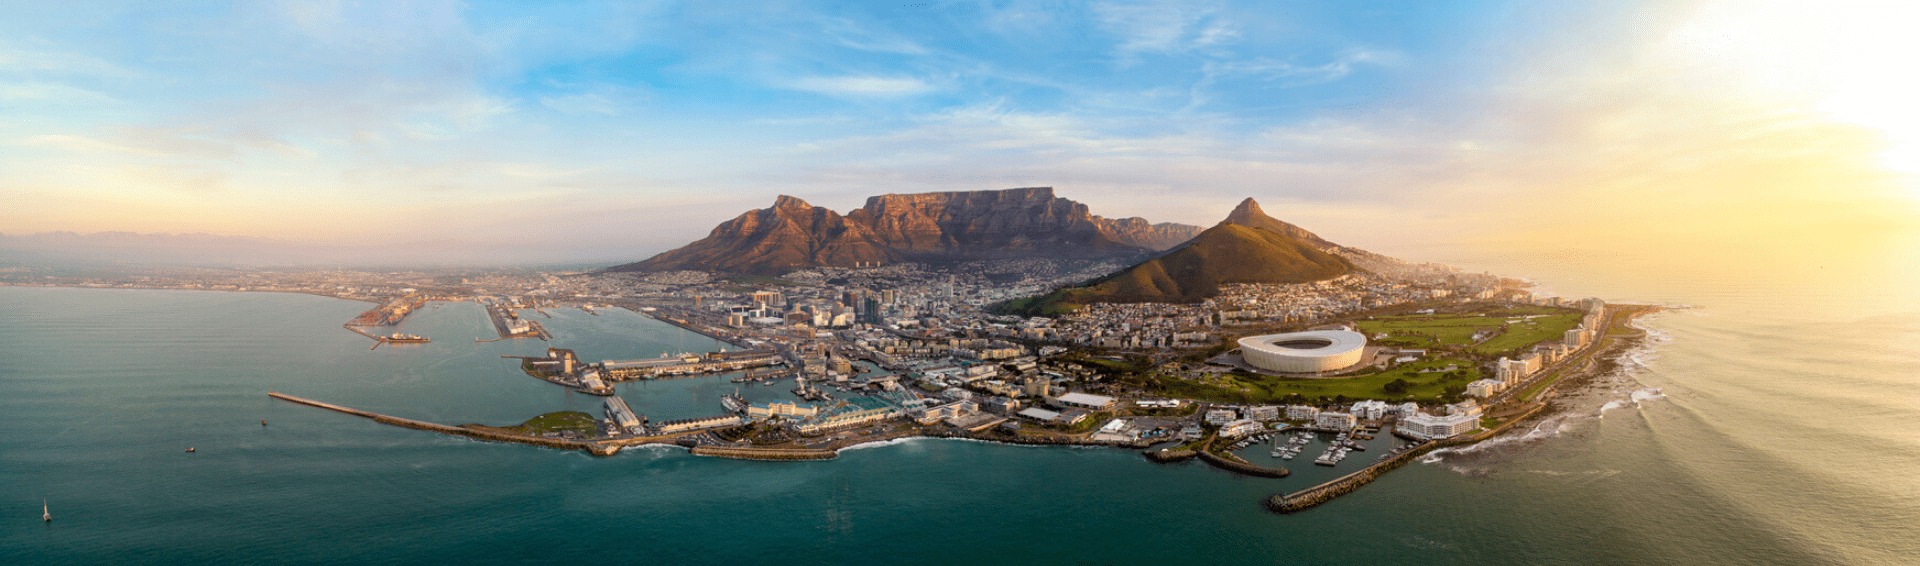 Cape Town from air 1920x566